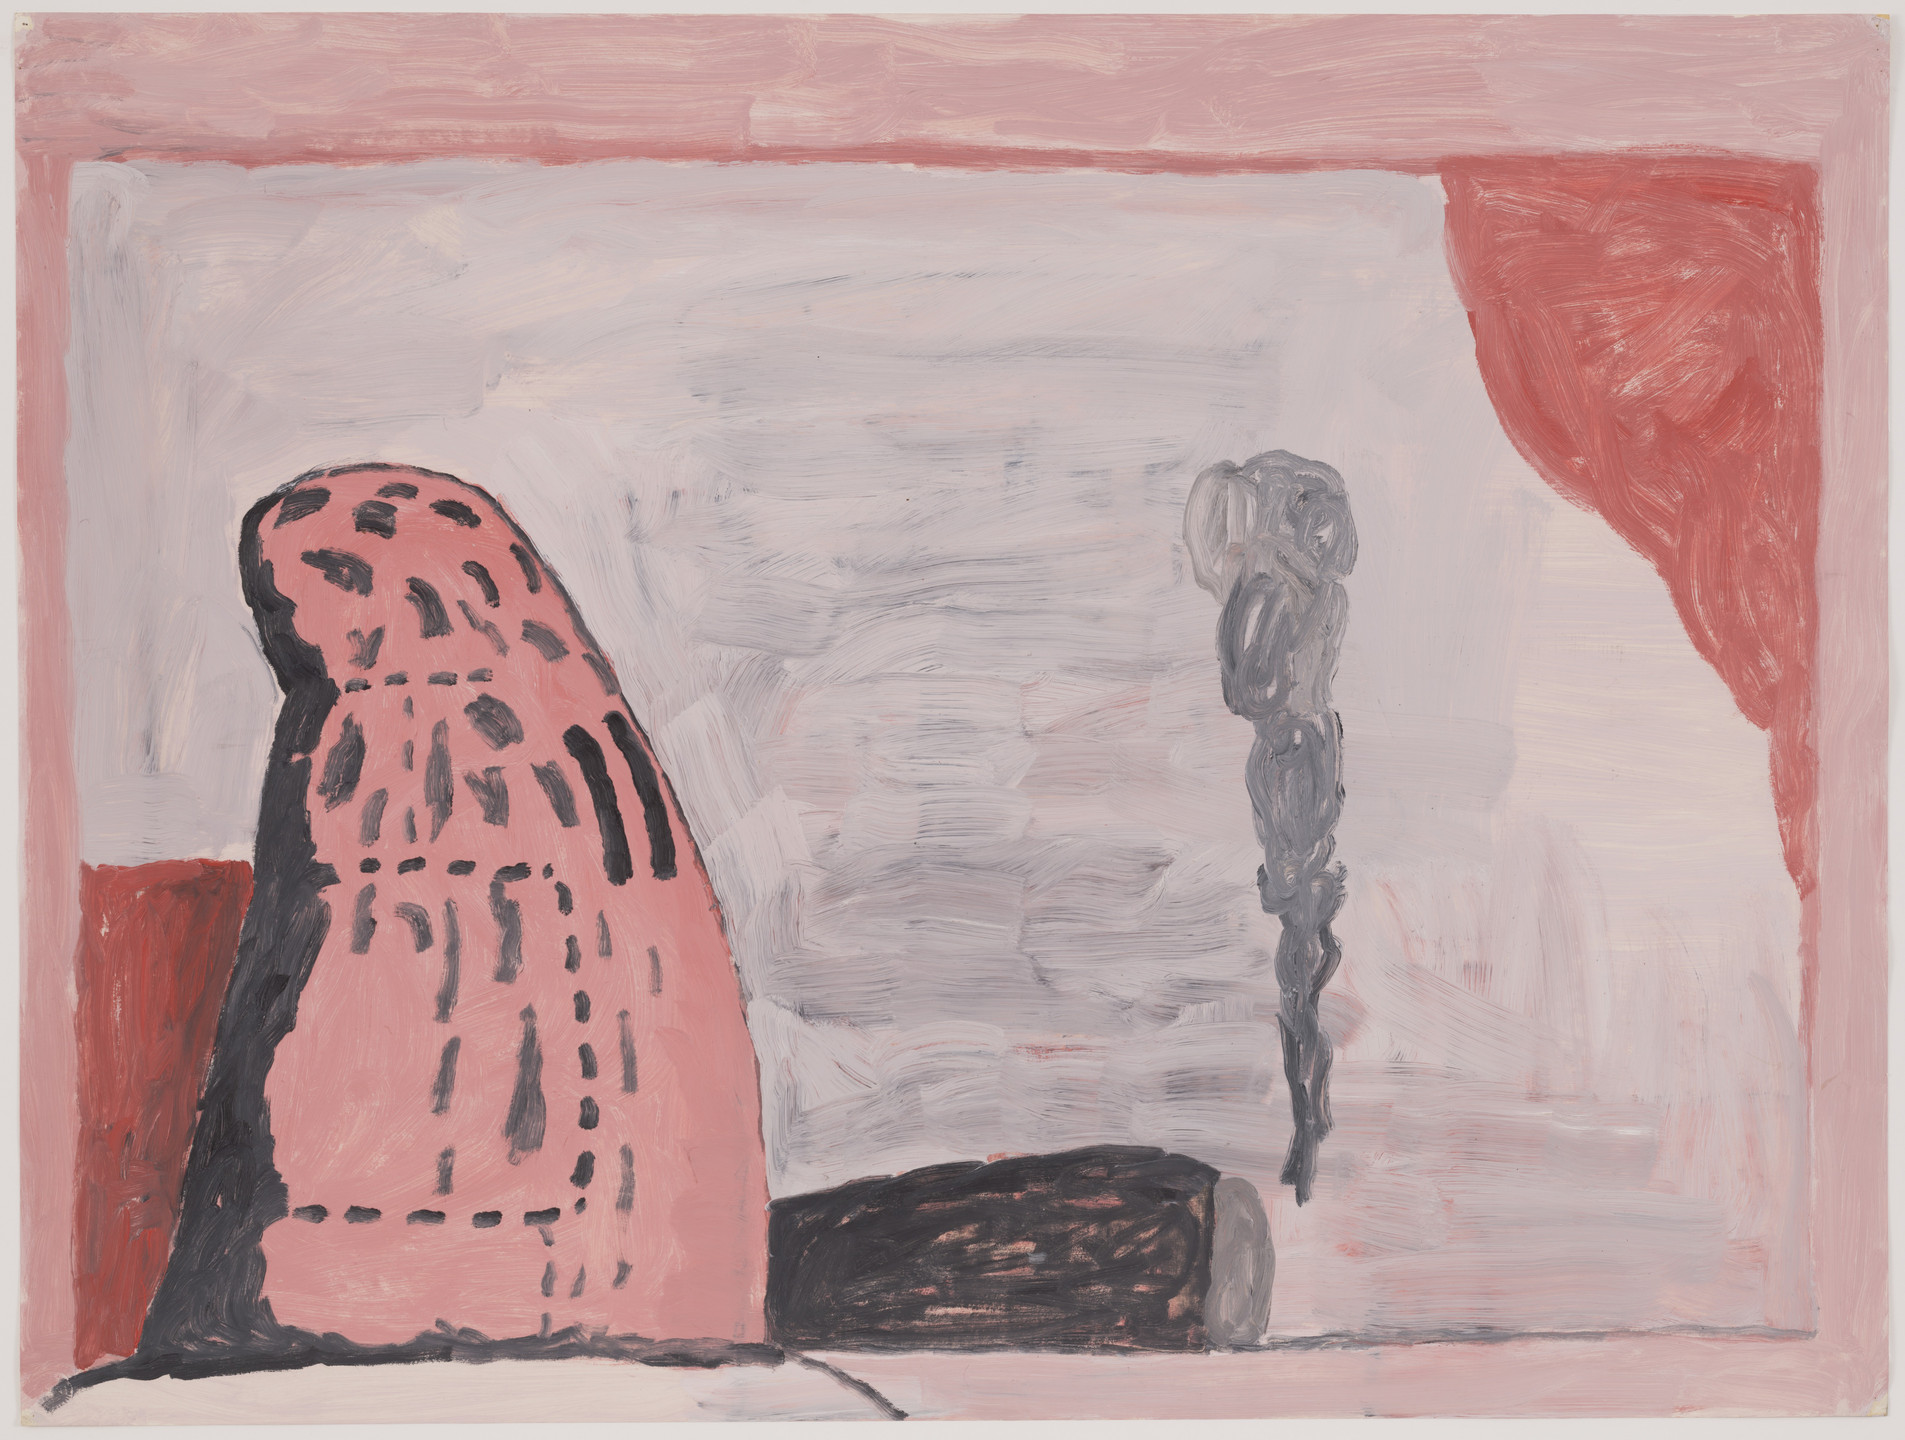 Philip Guston. Untitled (Waiting). 1972